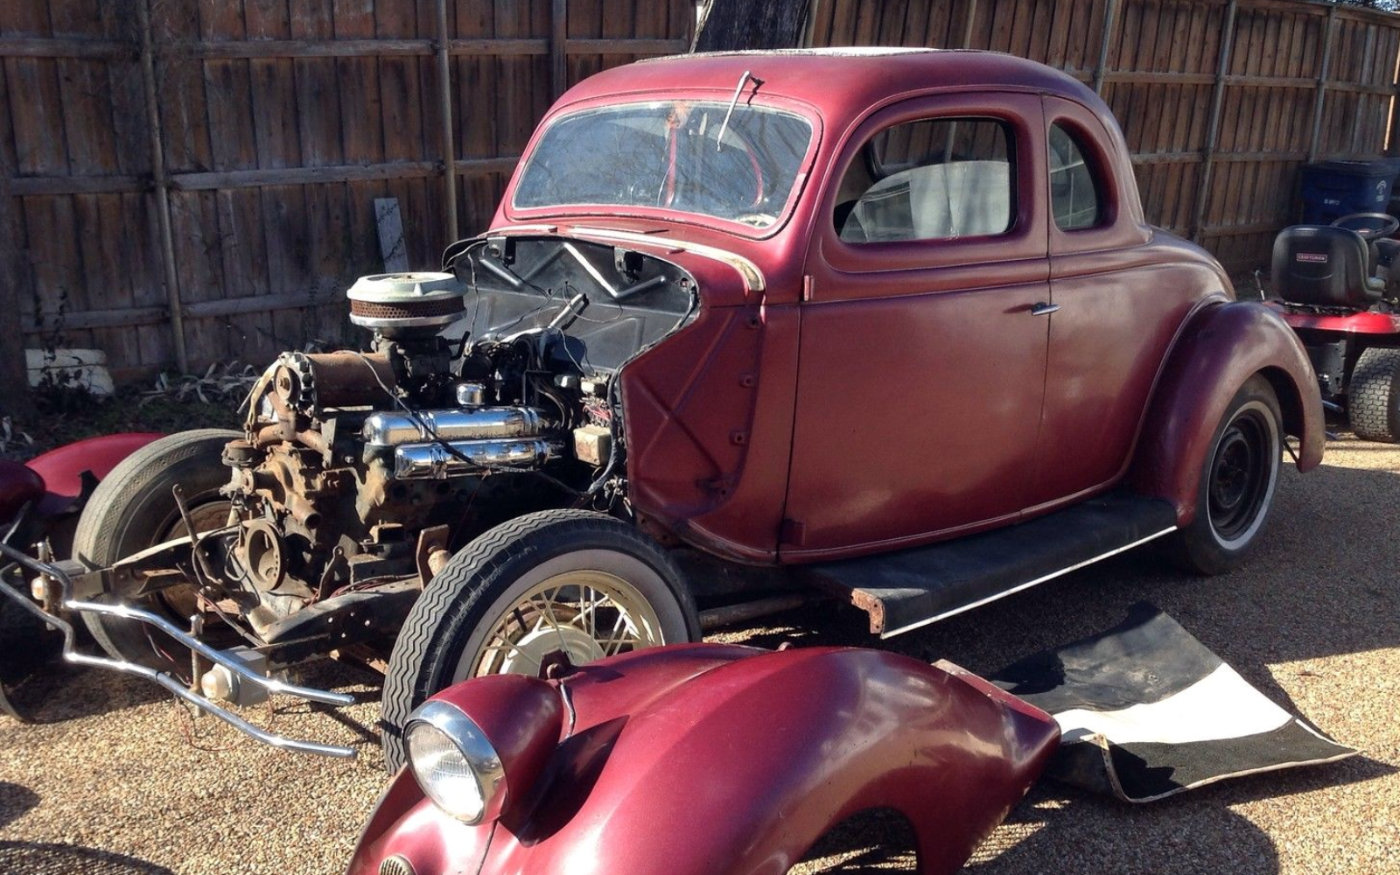 Vintage Rod Finds 1932 Amp 1936 Ford Coupes